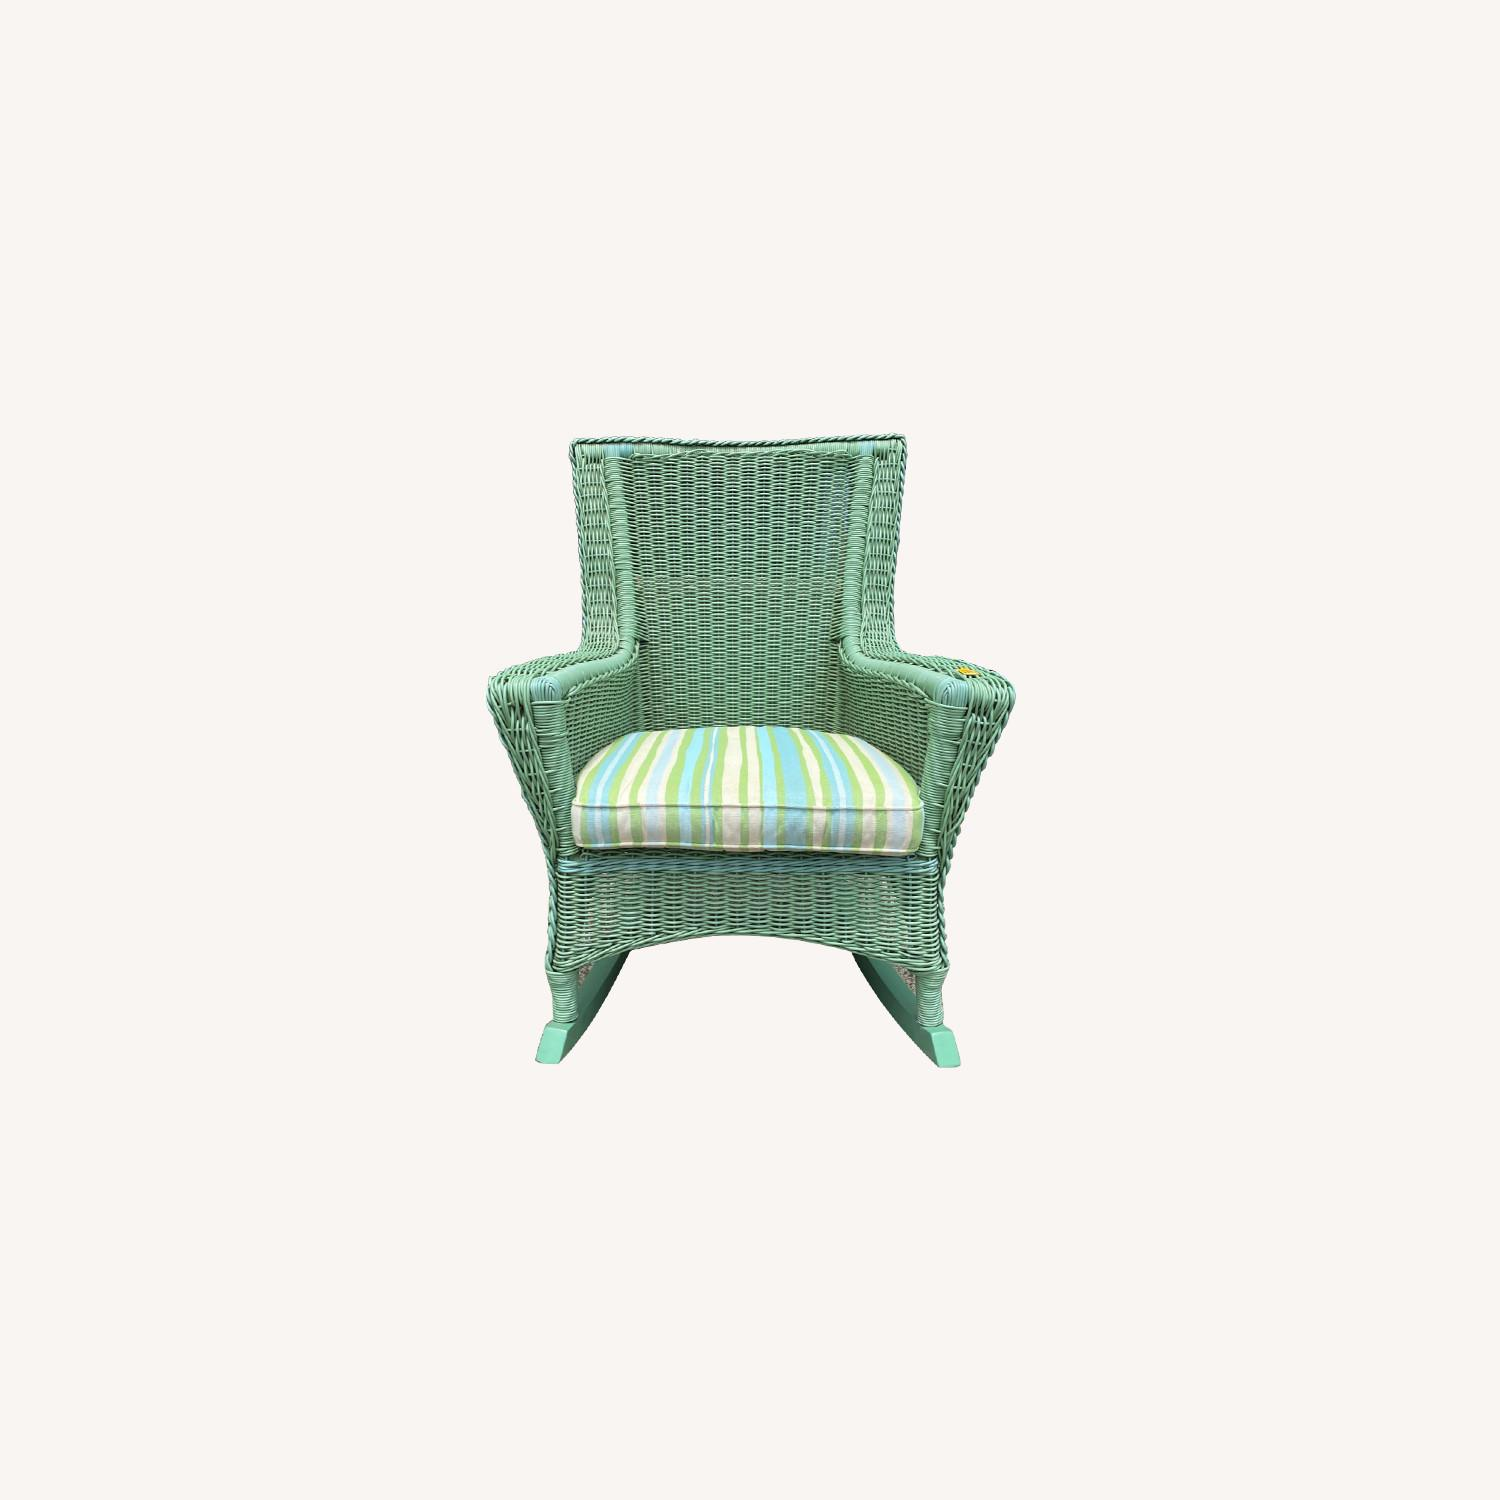 Maine Cottage Outdoor Wicker Rockers - image-0